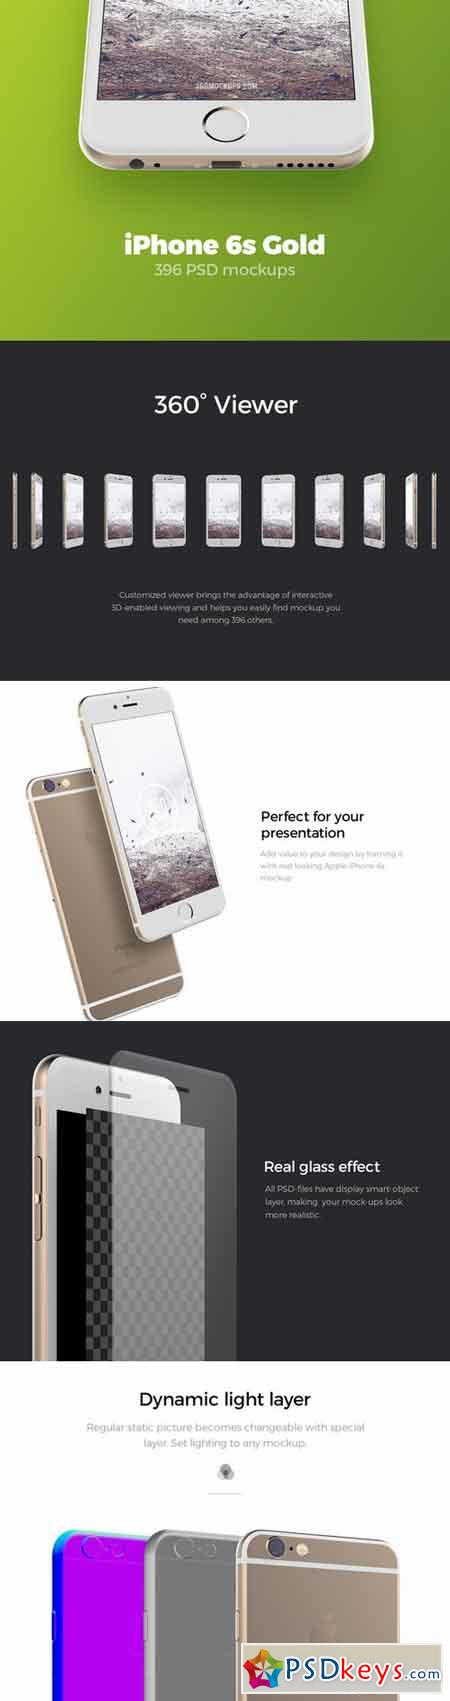 iPhone 6s Gold Mockups 649960